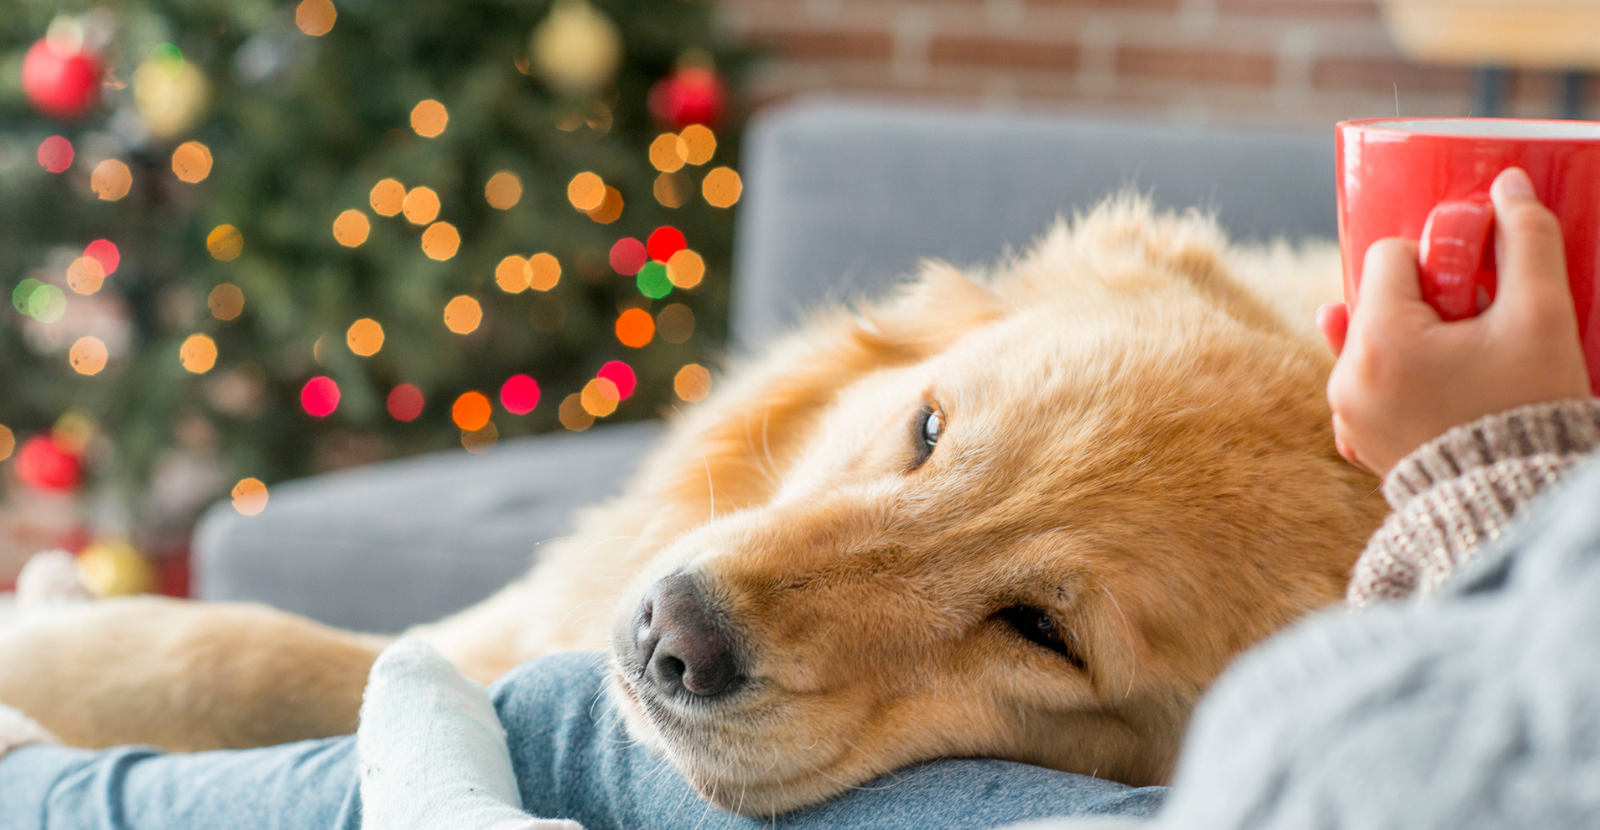 Make the Holidays Special with Your Pet